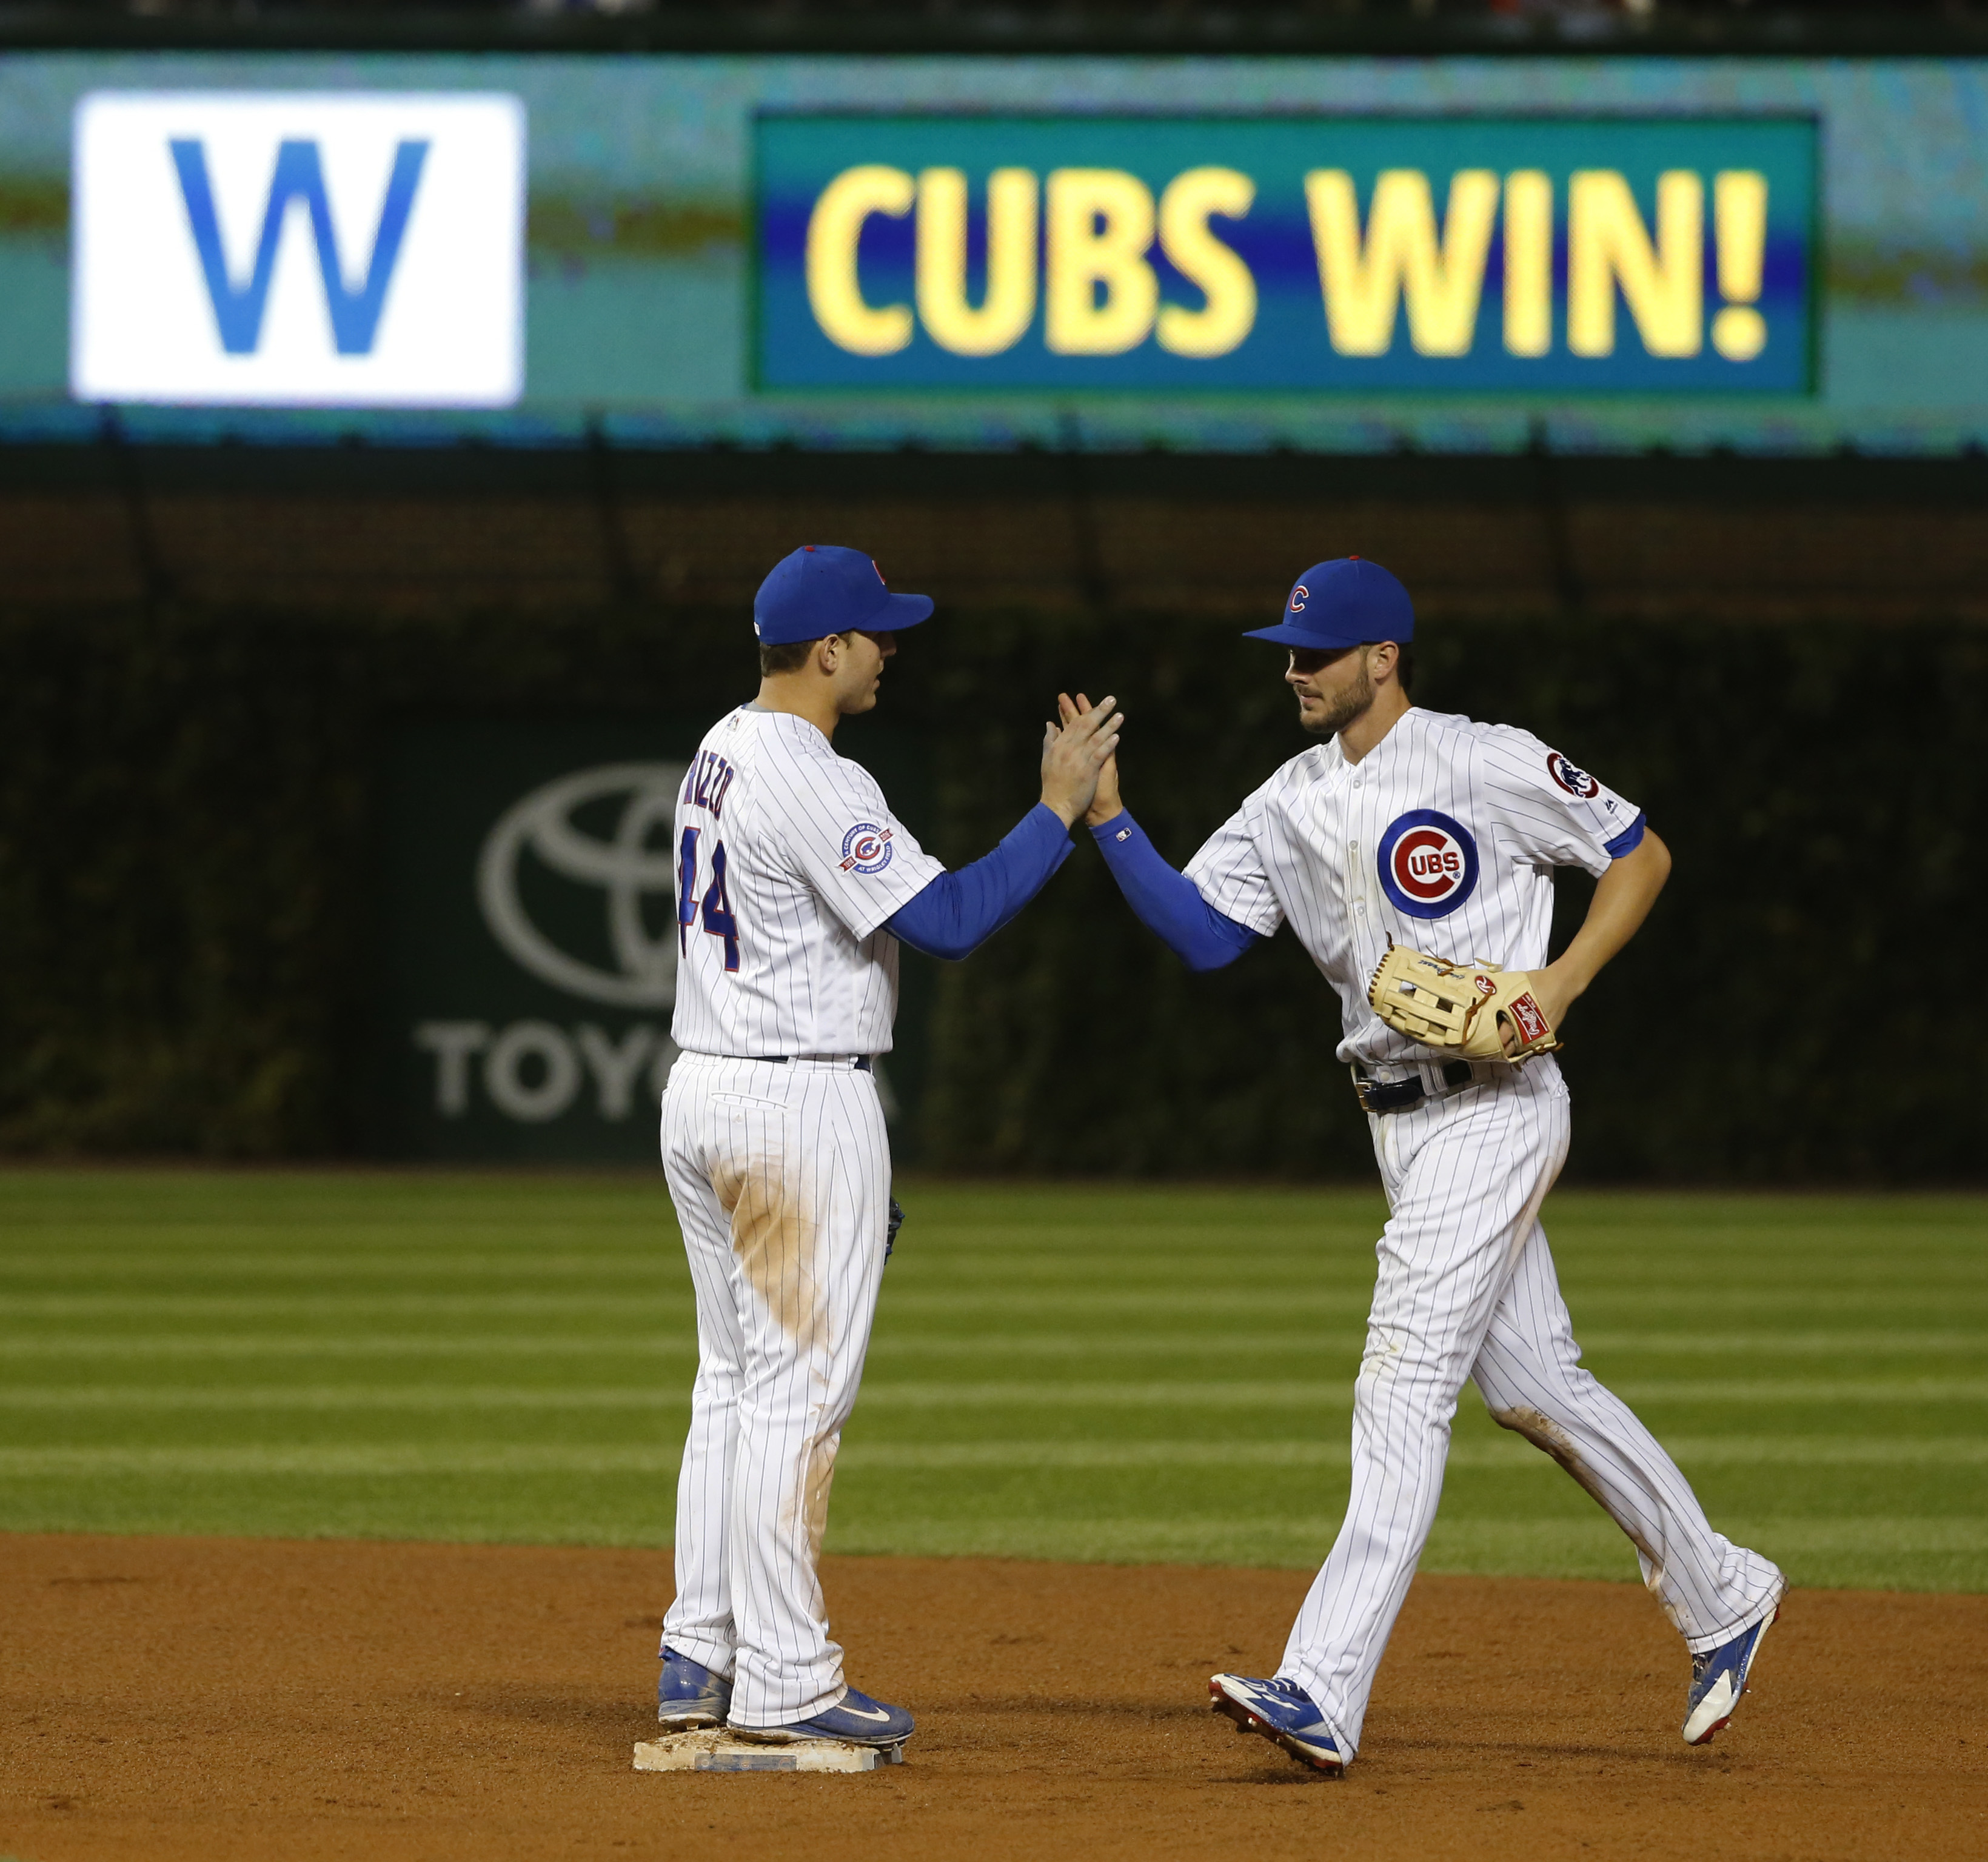 Chicago Cubs first baseman Anthony Rizzo, left, and Kris Bryant celebrate the Cubs' 6-1 win over the Cincinnati Reds after a baseball game Tuesday, Sept. 20, 2016, in Chicago. (AP Photo/Charles Rex Arbogast)